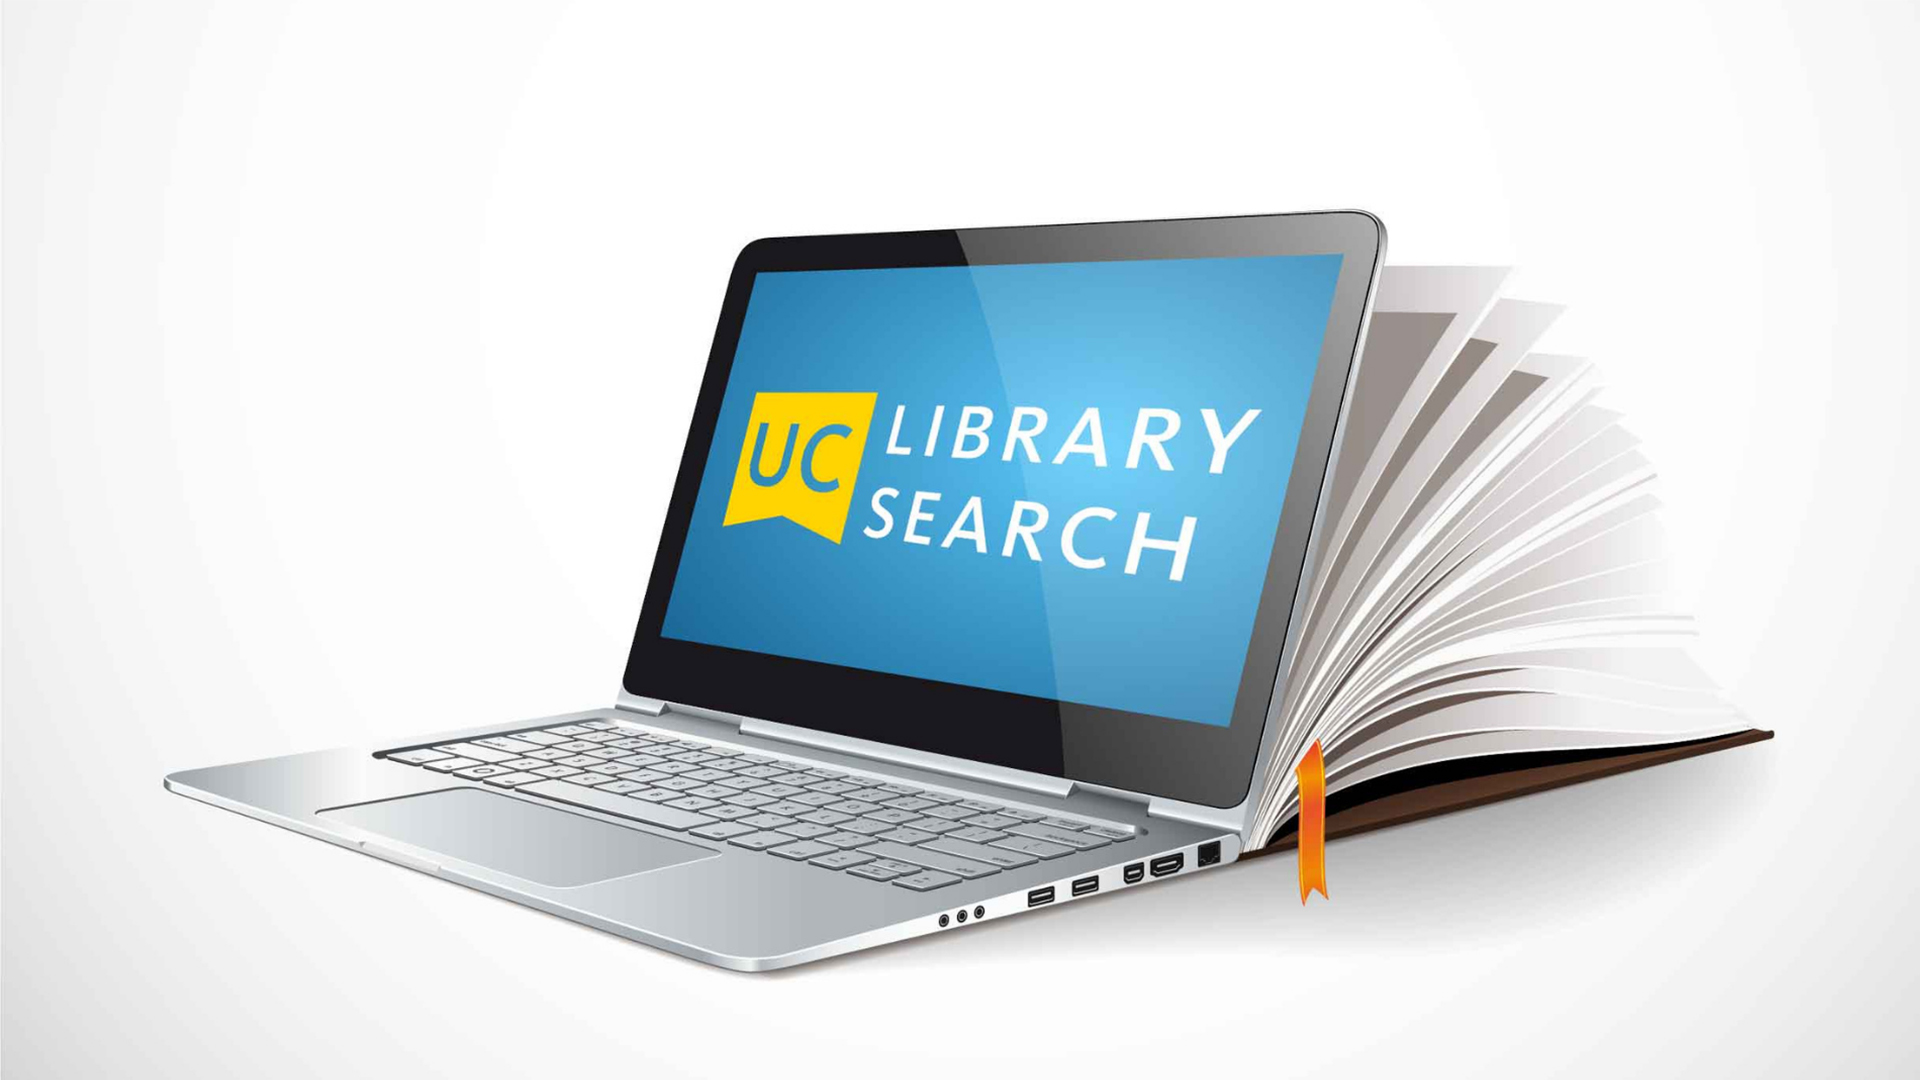 Image with UC Library Search logo and a laptop open that transitions into a book.